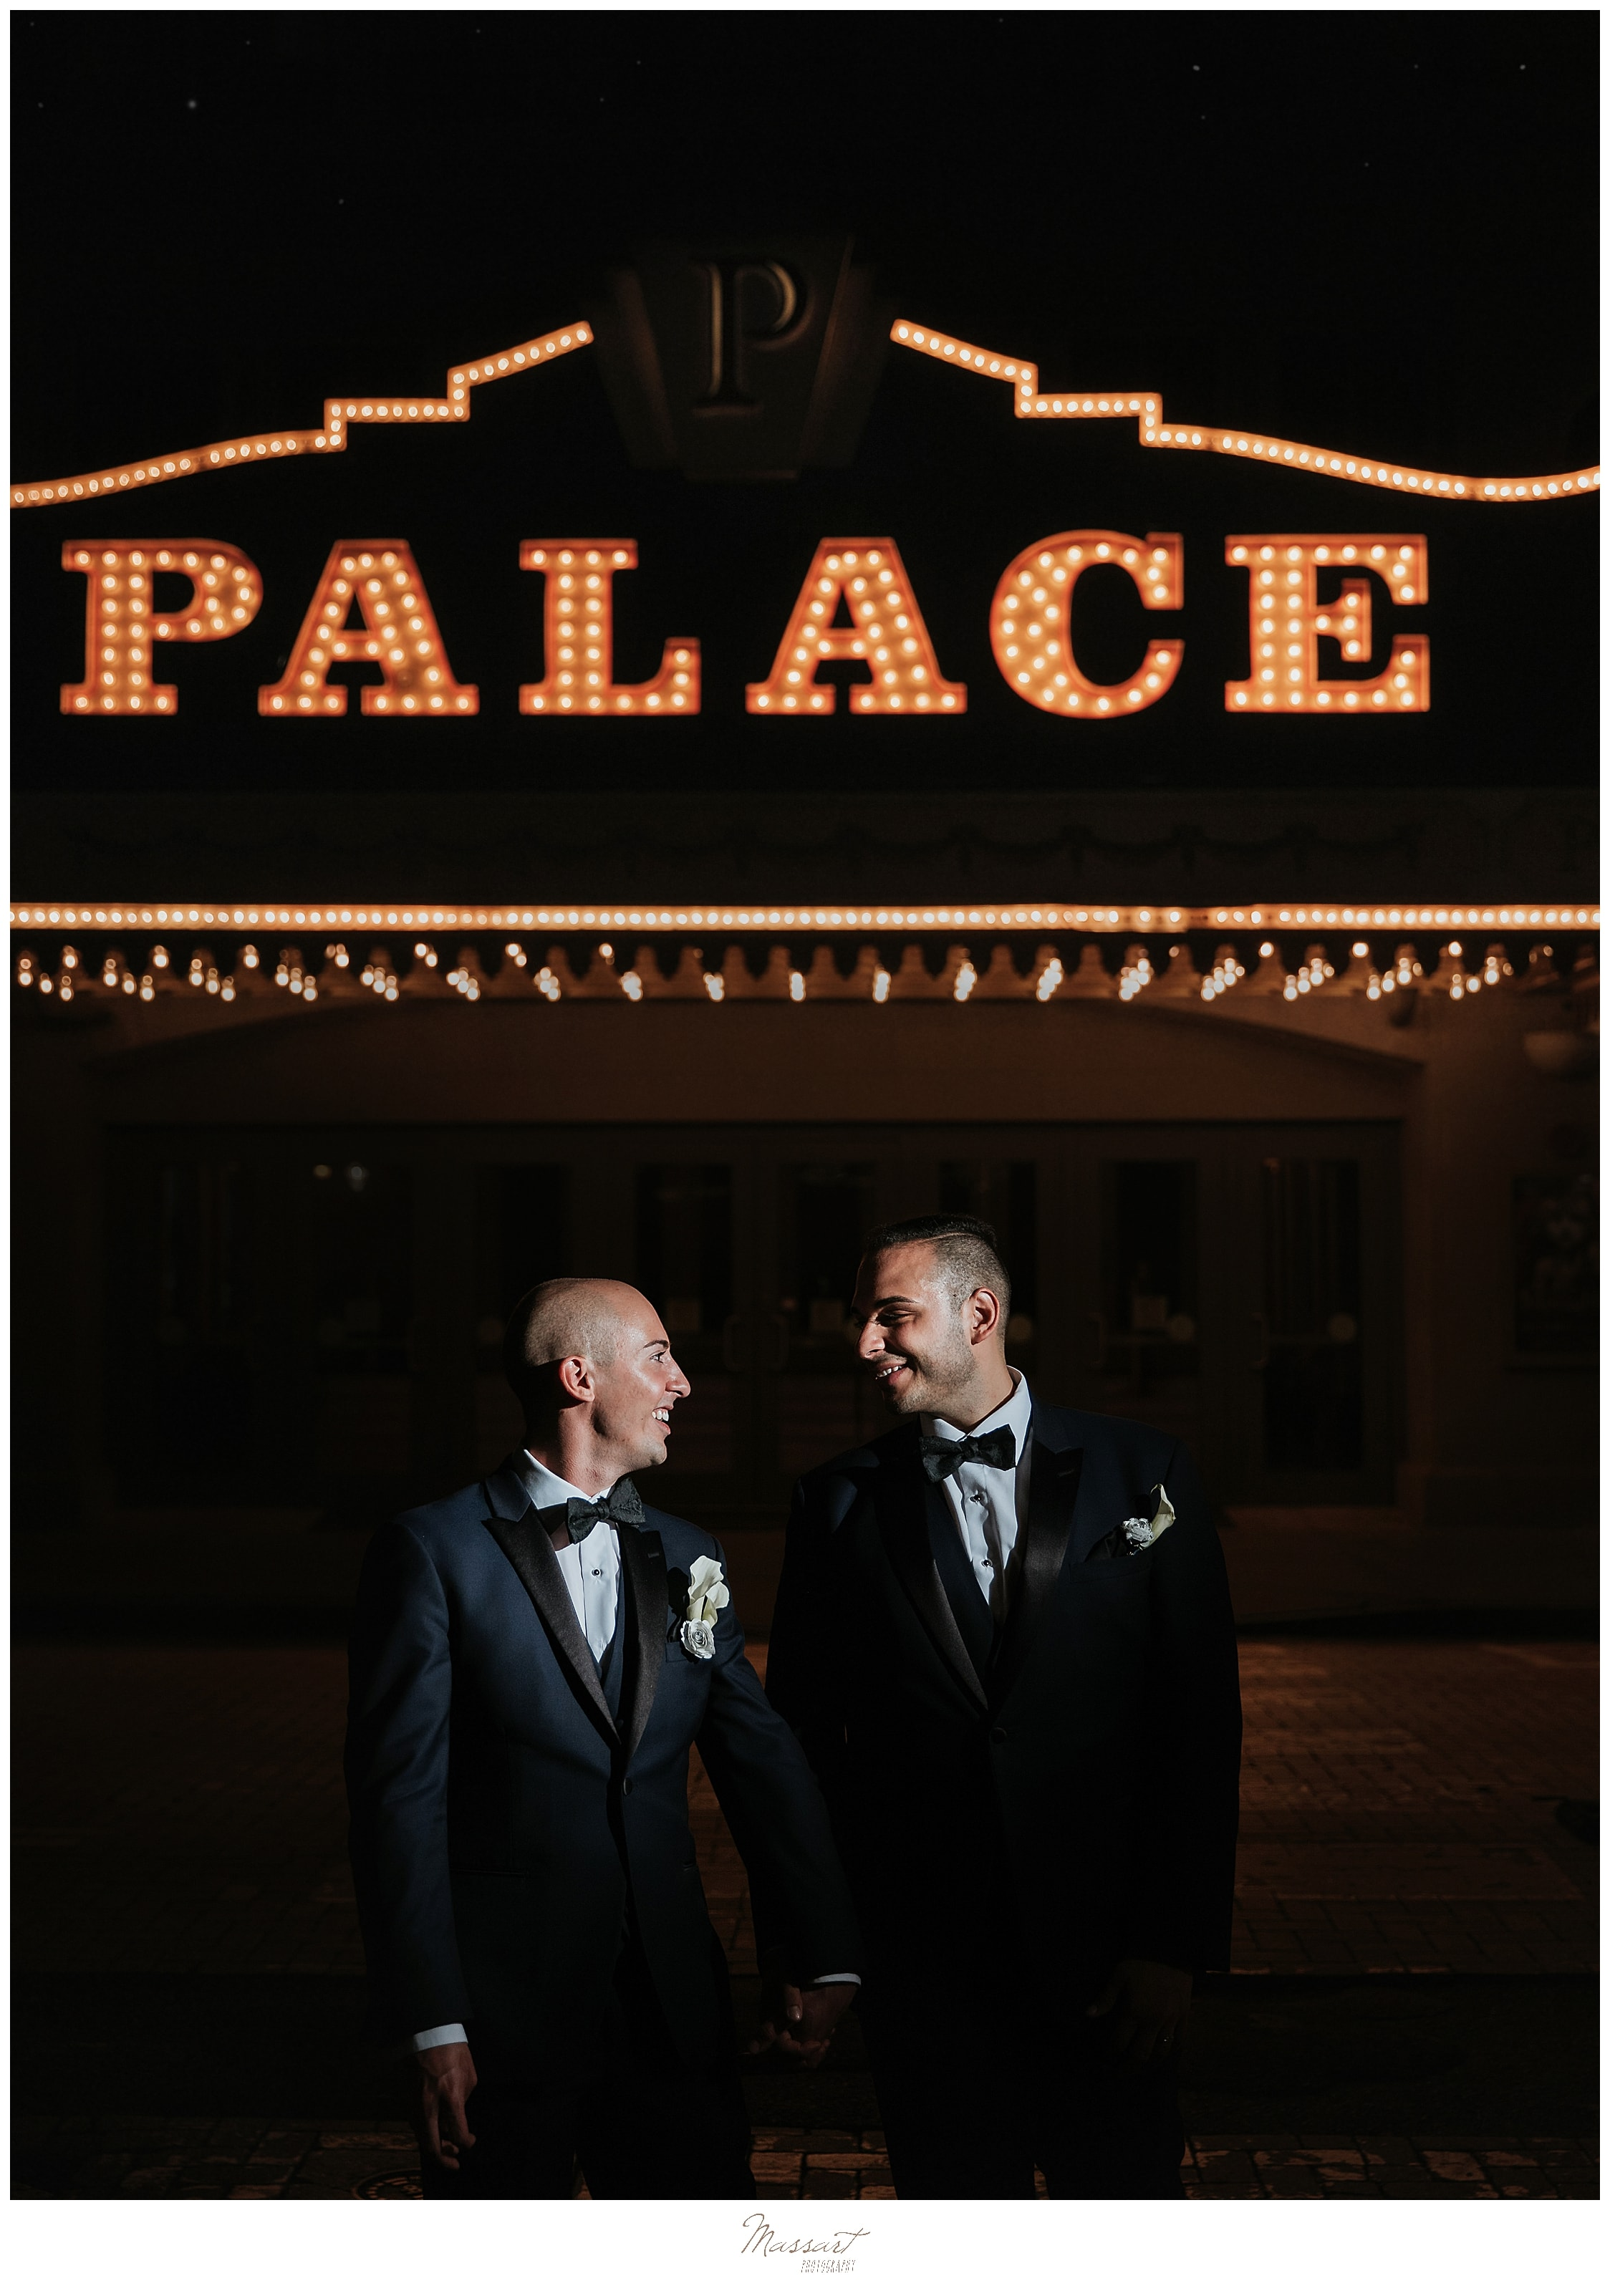 romantic and glamorous wedding portraits at the Palace Theater with wedding photographers Massart Photography